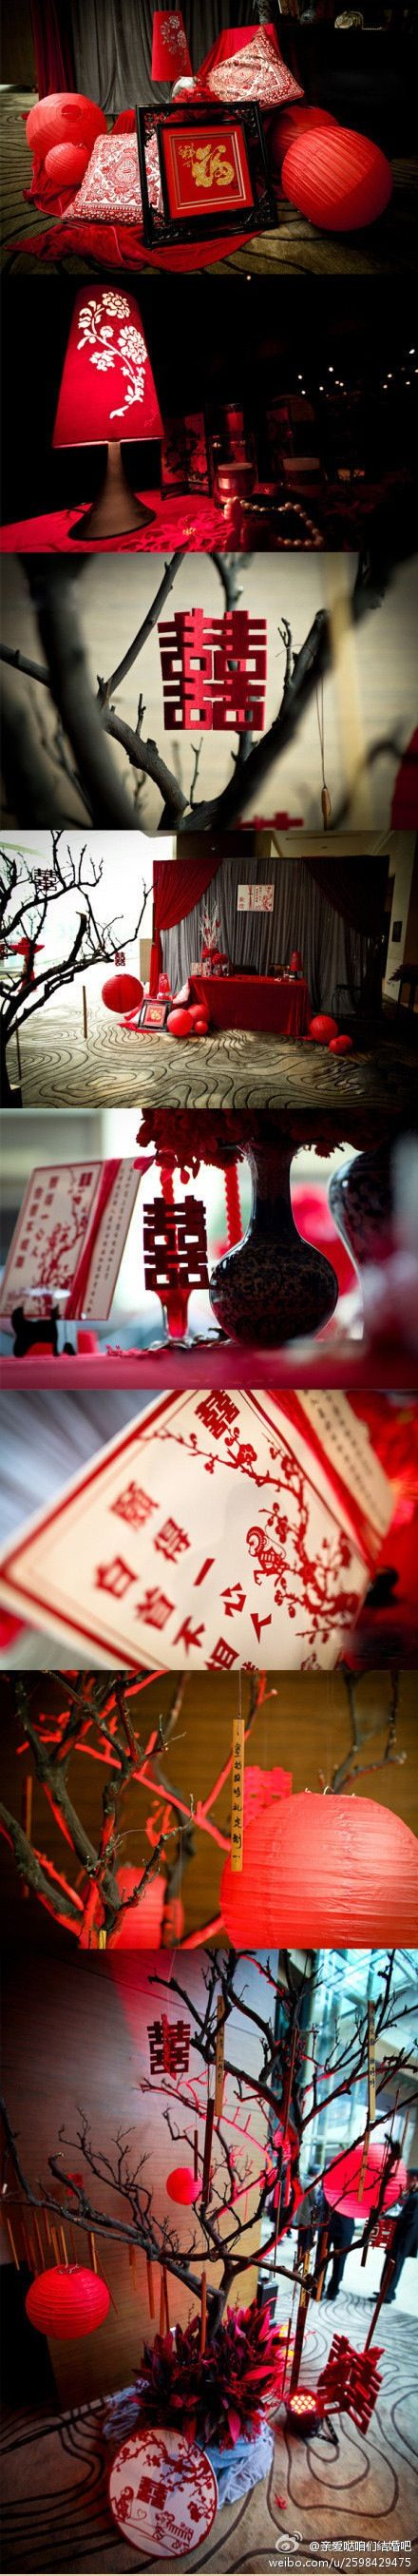 Traditional Chinese wedding decor. So gorgeous